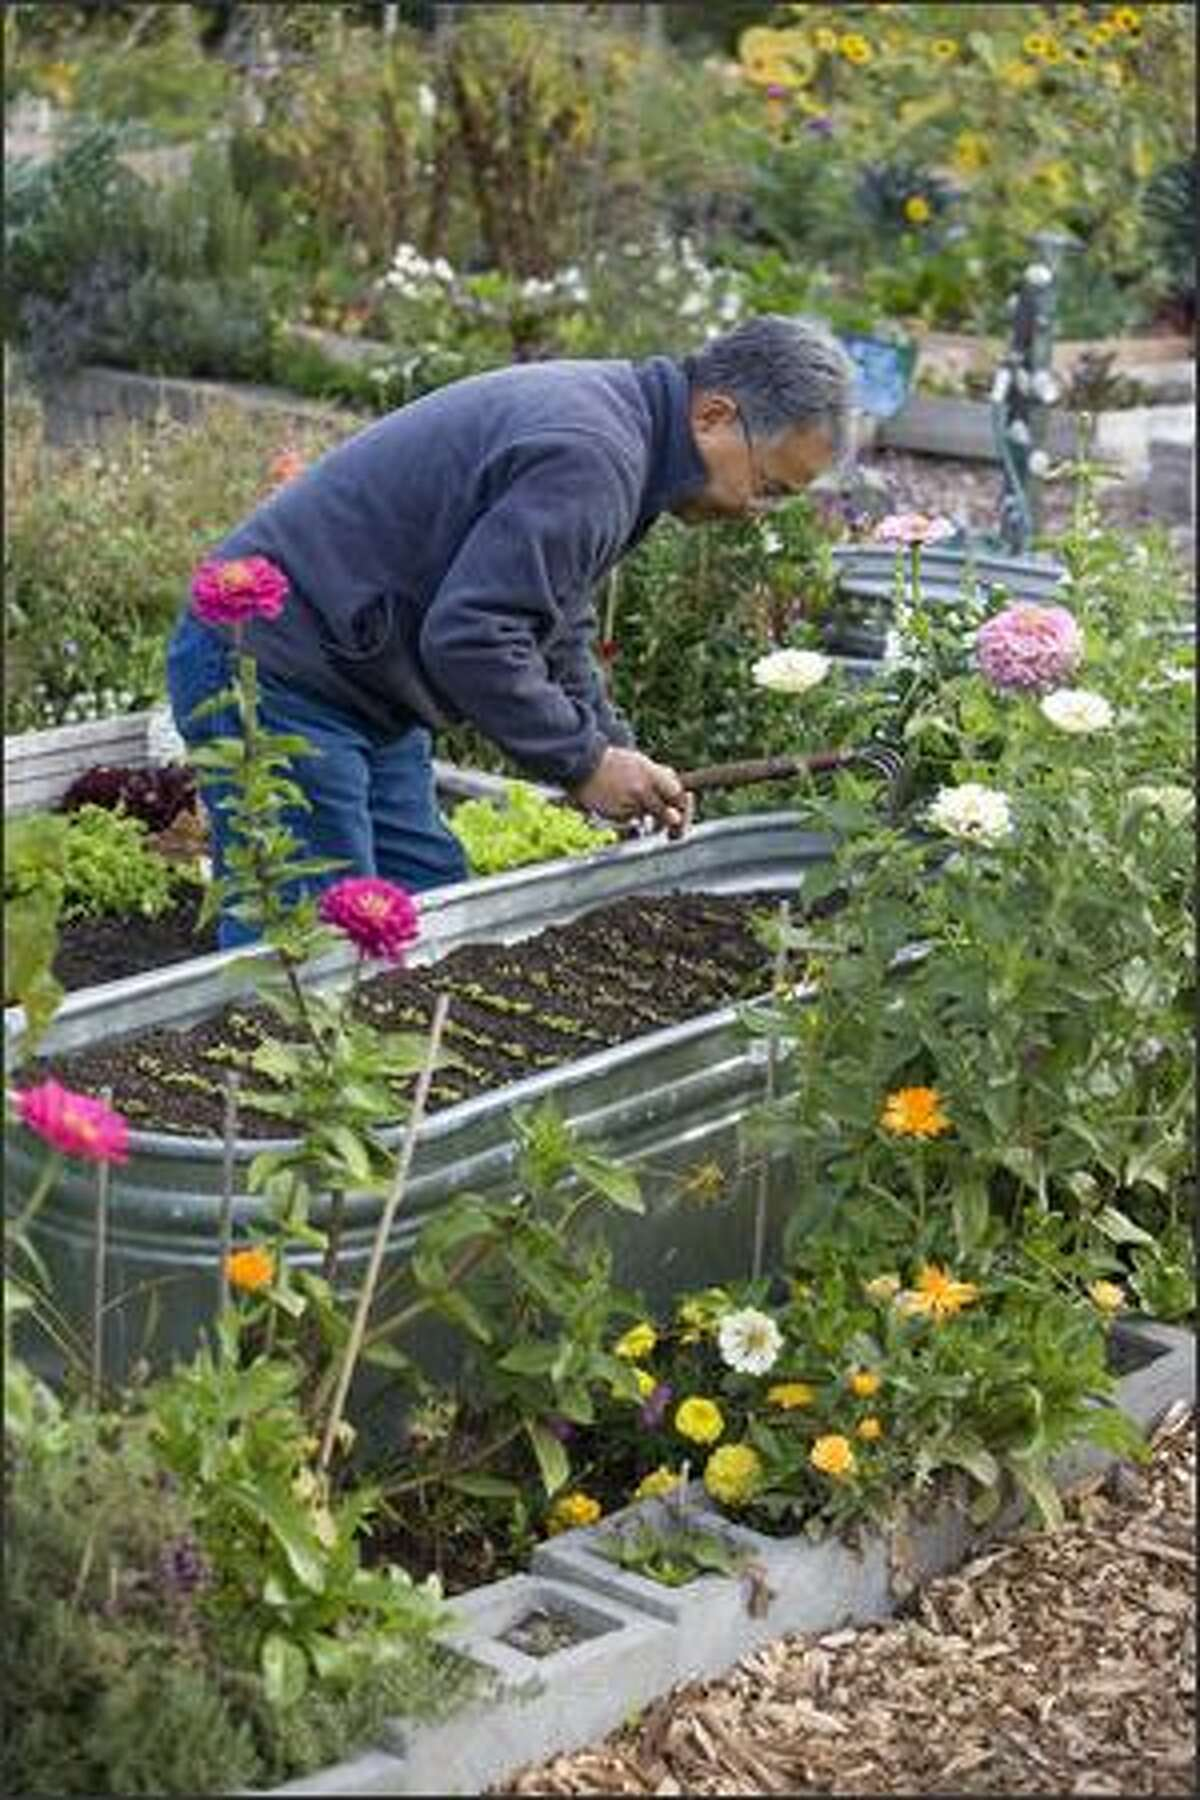 Hiro Kawasaki tends greens in a raised bed made from a galvanized metal tub at Bradner Gardens P-Patch. With their narrow sides, the containers are ideal for people with limited reach.